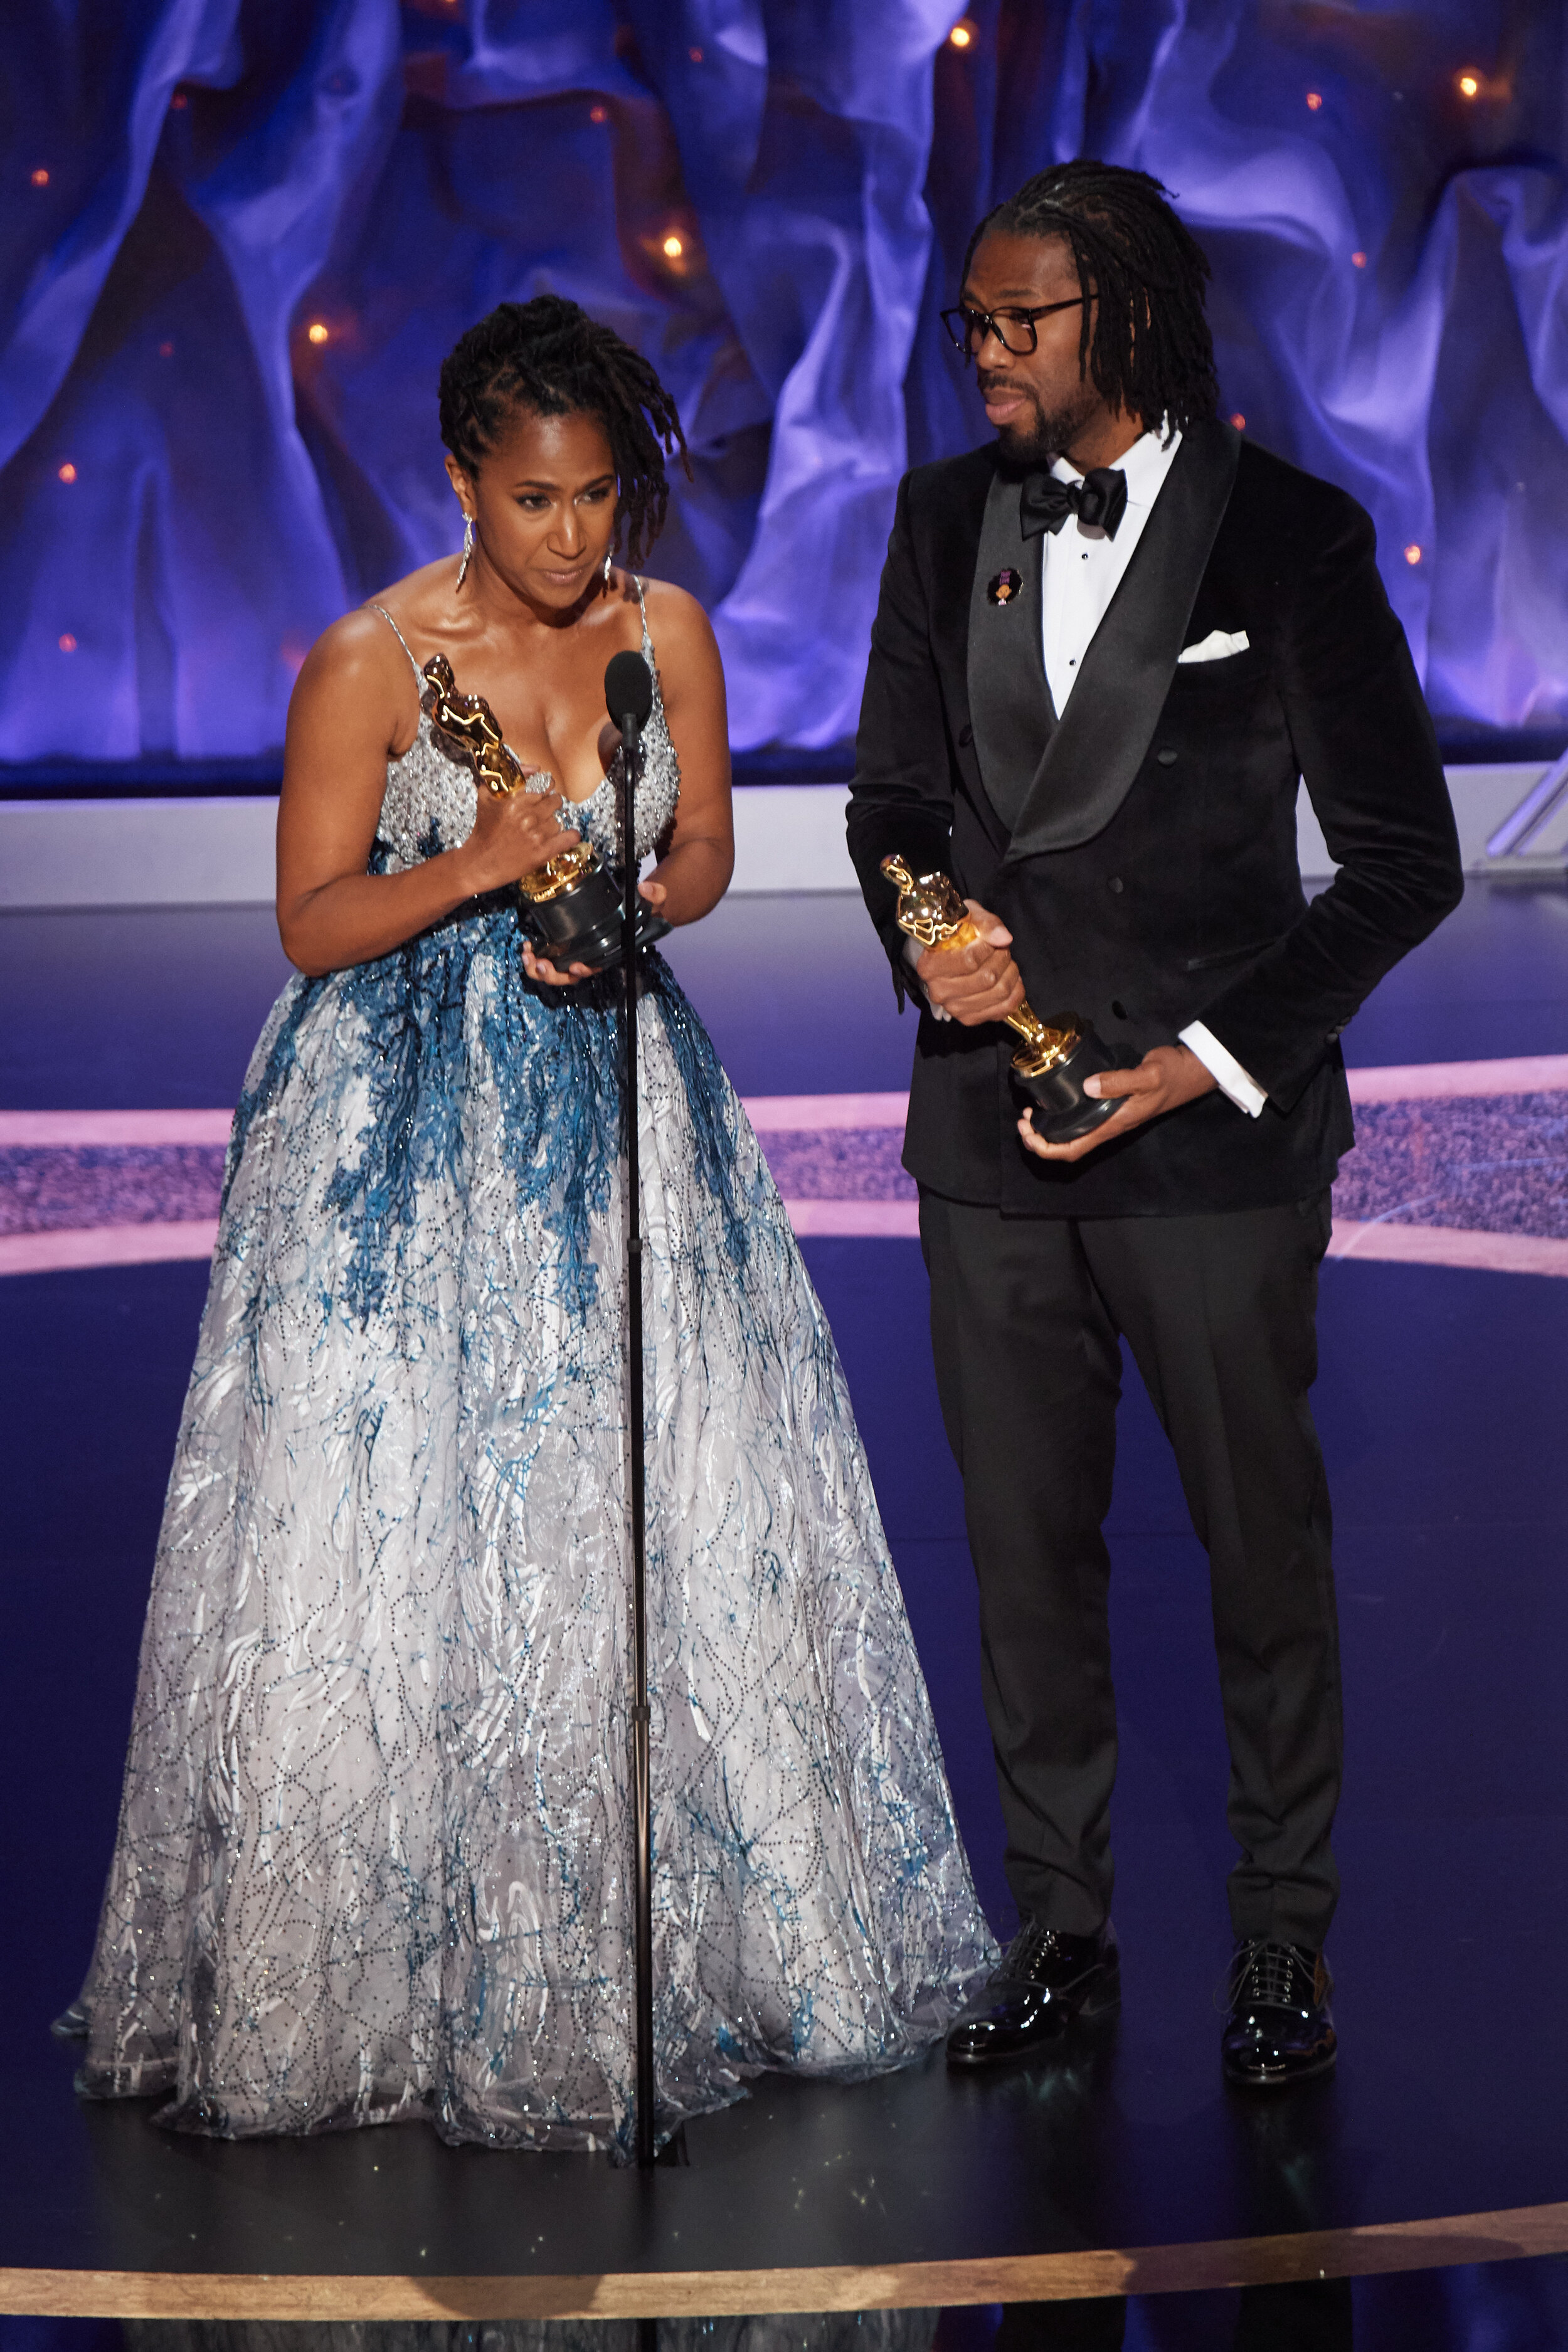 Karen Rupert Toliver and Matthew A. Cherry accept the Oscar® for Animated Short Film during the live ABC Telecast of The 92nd Oscars® at the Dolby® Theatre in Hollywood, CA on Sunday, February 9, 2020. (Photo Credit)